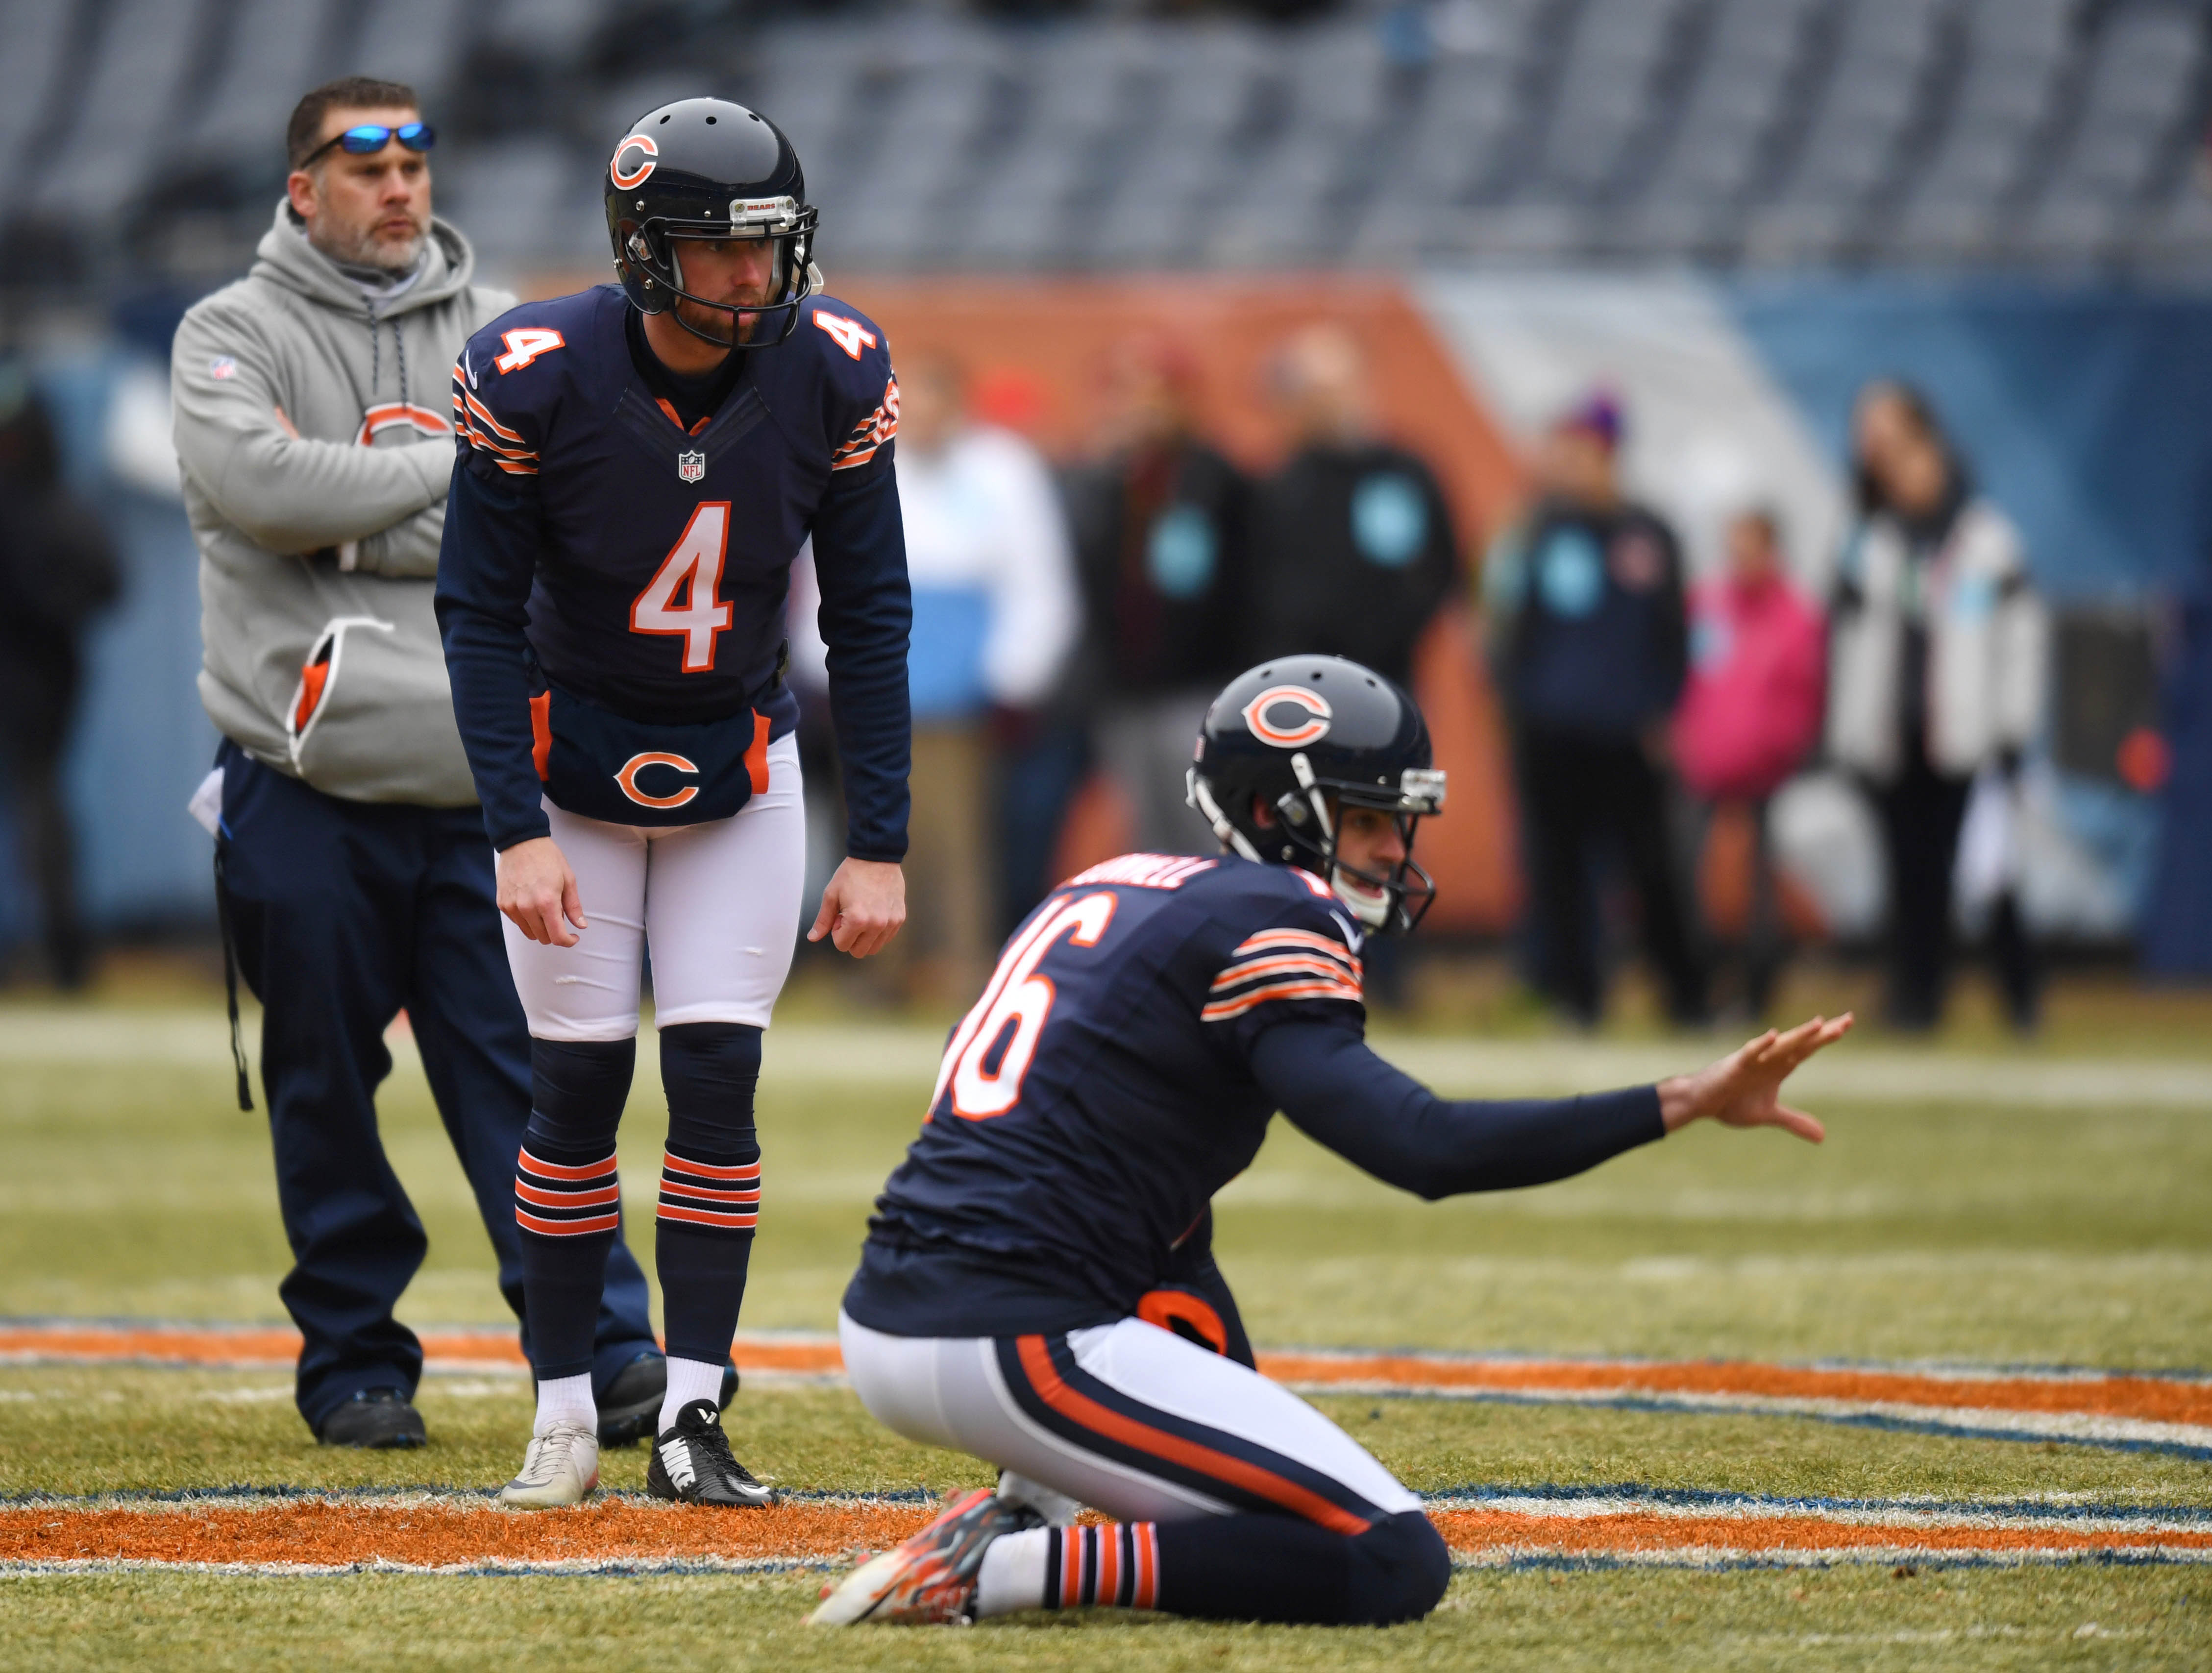 Dec 24, 2016; Chicago, IL, USA; Chicago Bears kicker Connor Barth (4) and punter Pat O'Donnell (16) warm up prior to their game against the Washington Redskins at Soldier Field. Mandatory Credit: Patrick Gorski-USA TODAY Sports